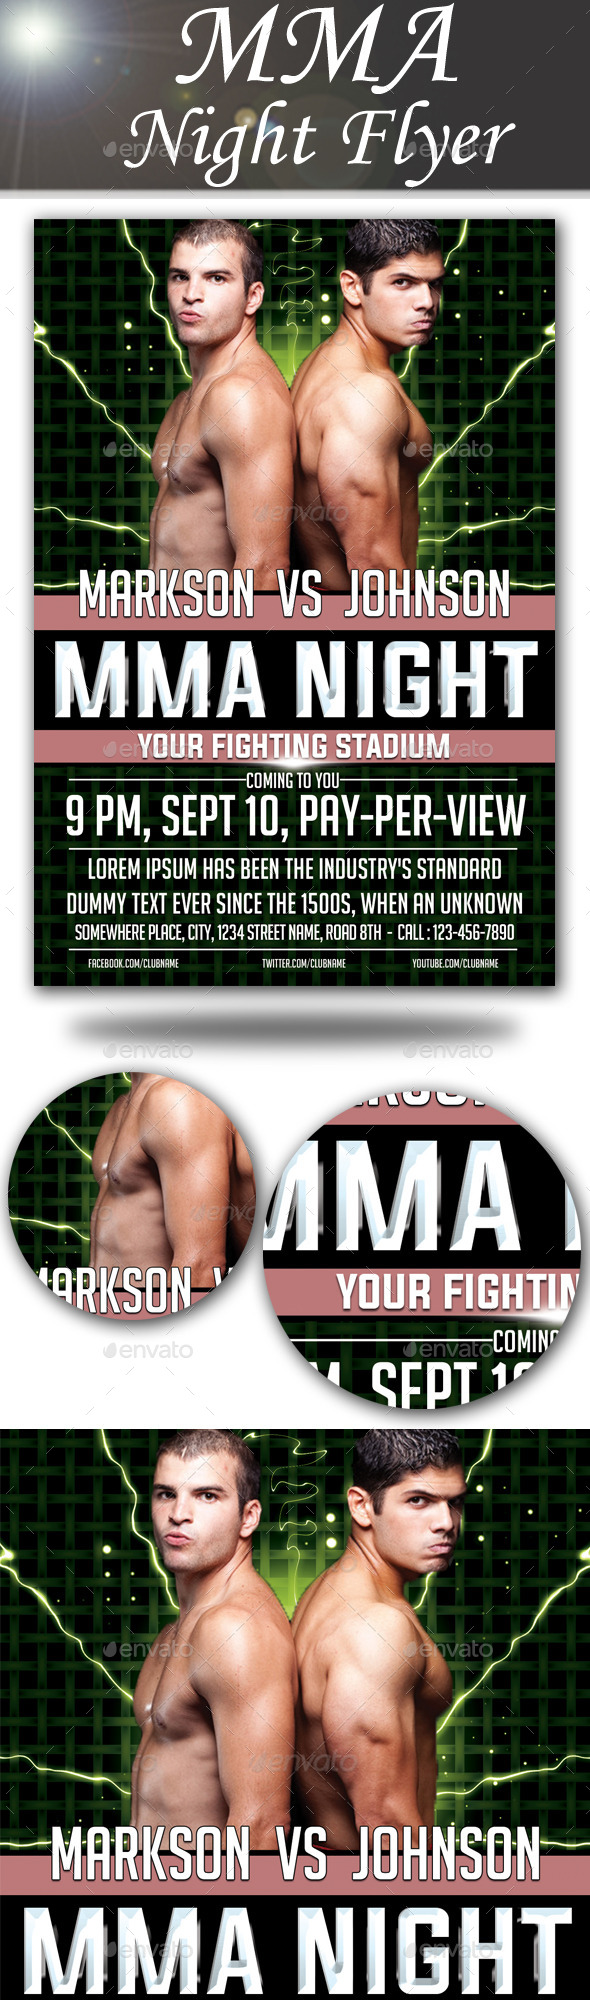 GraphicRiver MMA Night Flyer 8836226